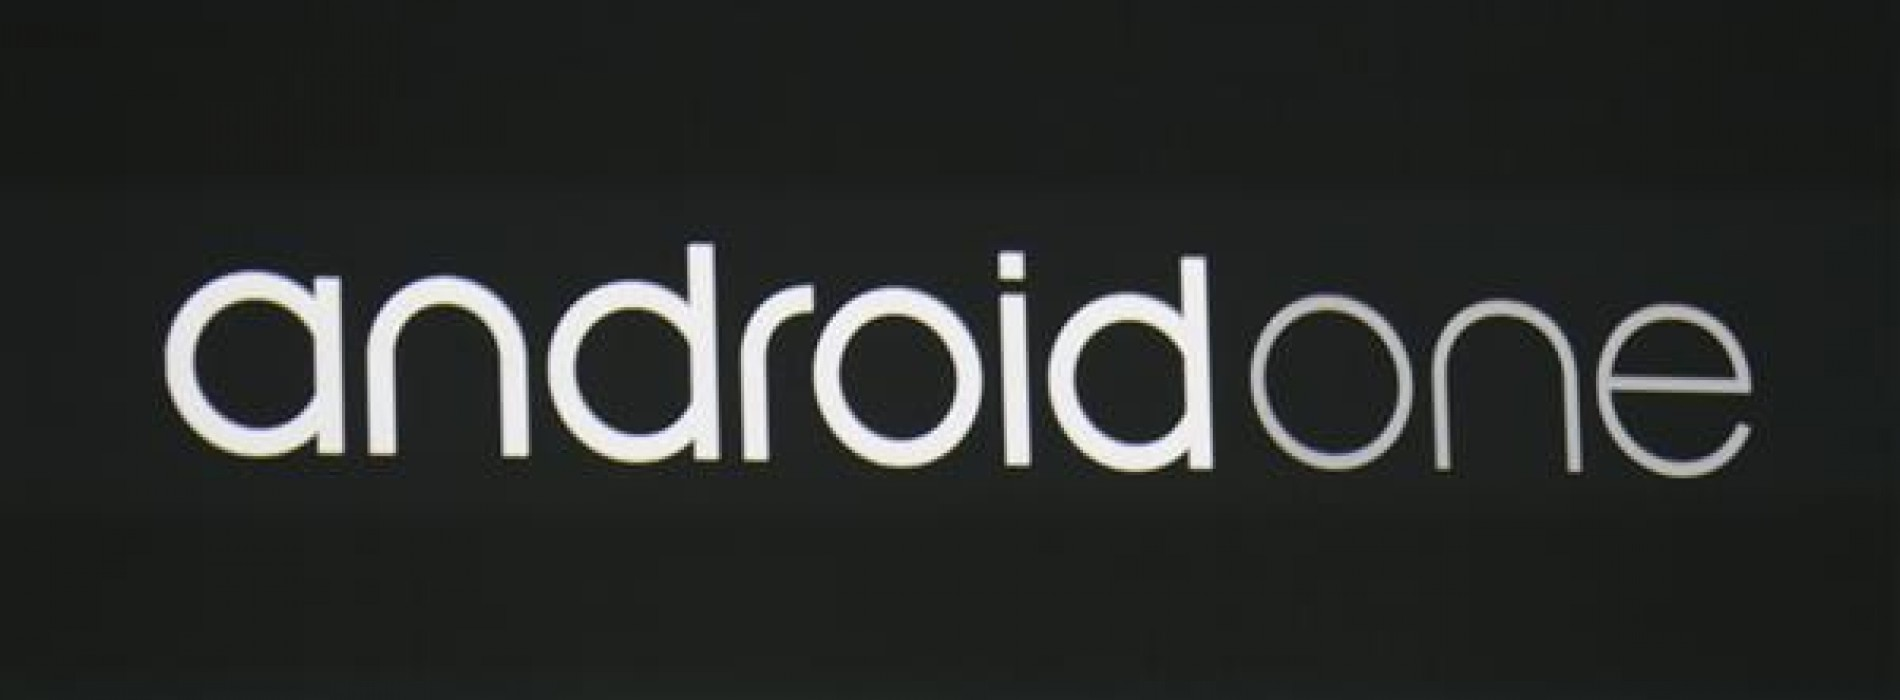 Google announces Android One